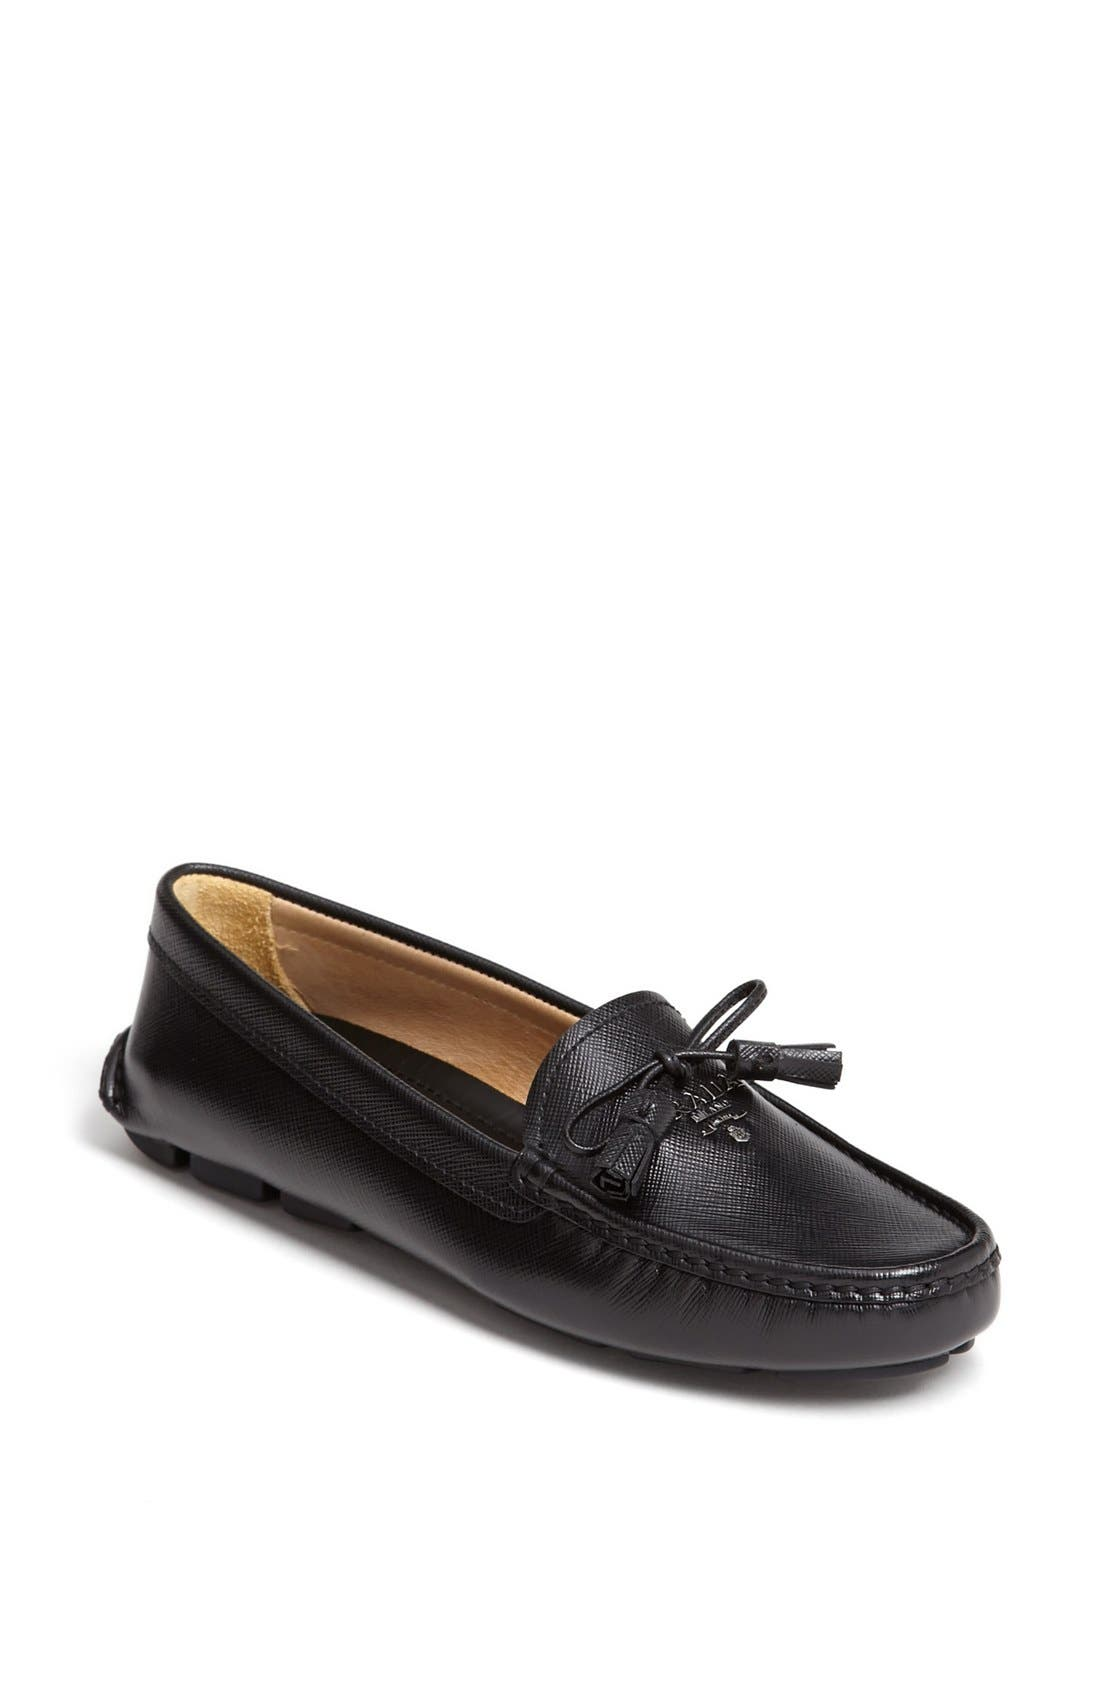 Main Image - Prada Tasseled Moccasin Loafer